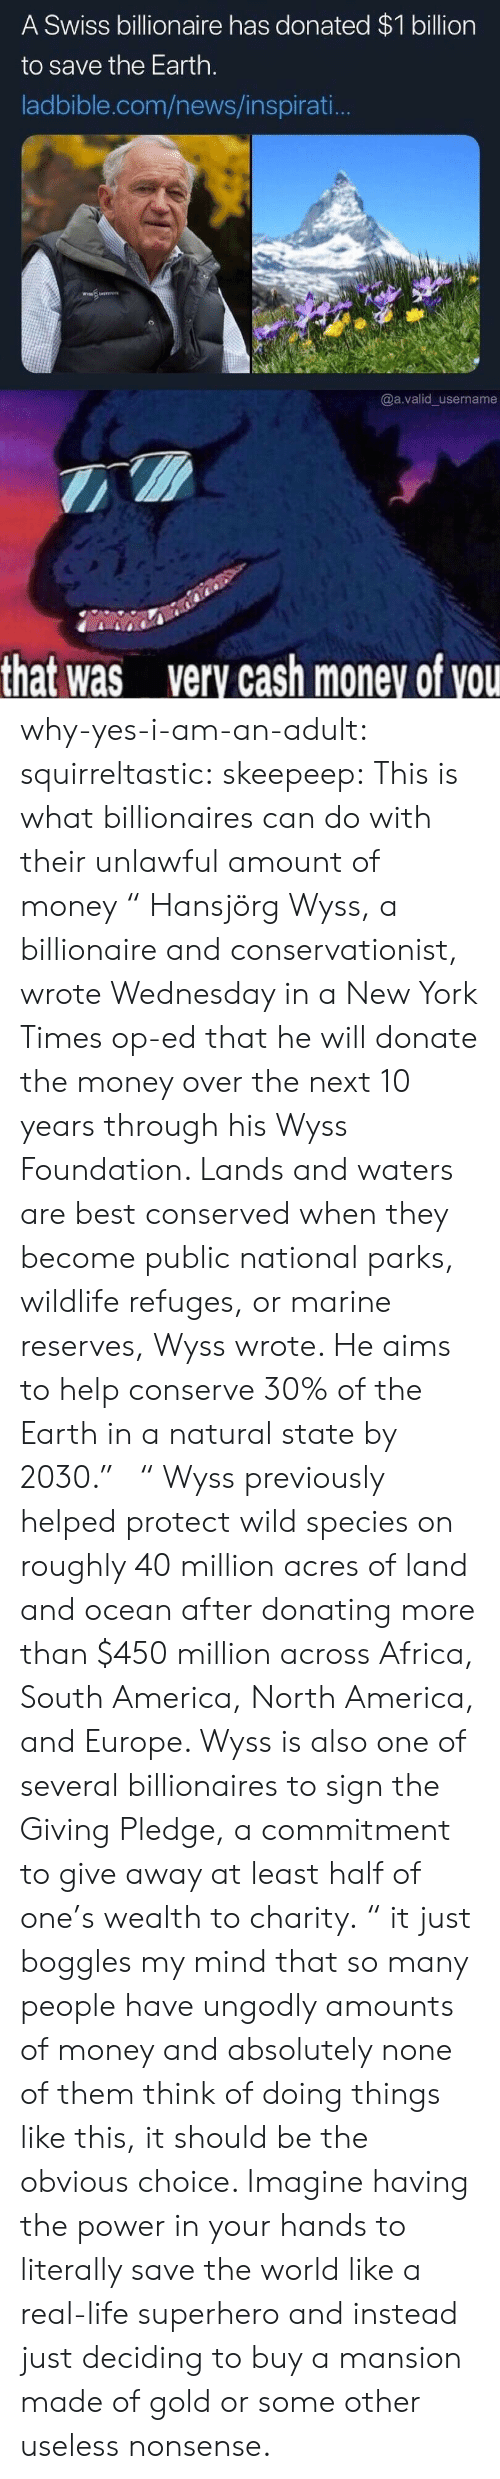 """New York Times: A Swiss billionaire has donated $1 billion  to save the Earth.  ladbible.com/news/inspirati..  @a.valid username  that was  very cash money of vou why-yes-i-am-an-adult: squirreltastic:  skeepeep: This is what billionaires can do with their unlawful amount of money """"  Hansjörg Wyss, a billionaire and conservationist, wrote Wednesday in a New York Times op-ed that he will donate the money over the next 10 years through his Wyss Foundation. Lands and waters are best conserved when they become public national parks, wildlife refuges, or marine reserves, Wyss wrote. He aims to help conserve 30% of the Earth in a natural state by 2030.""""  """"   Wyss previously helped protect wild species on roughly 40 million acres of land and ocean after donating more than $450 million across Africa, South America, North America, and Europe. Wyss is also one of several billionaires to sign the Giving Pledge, a commitment to give away at least half of one's wealth to charity.  """"  it just boggles my mind that so many people have ungodly amounts of money and absolutely none of them think of doing things like this, it should be the obvious choice. Imagine having the power in your hands to literally save the world like a real-life superhero and instead just deciding to buy a mansion made of gold or some other useless nonsense."""